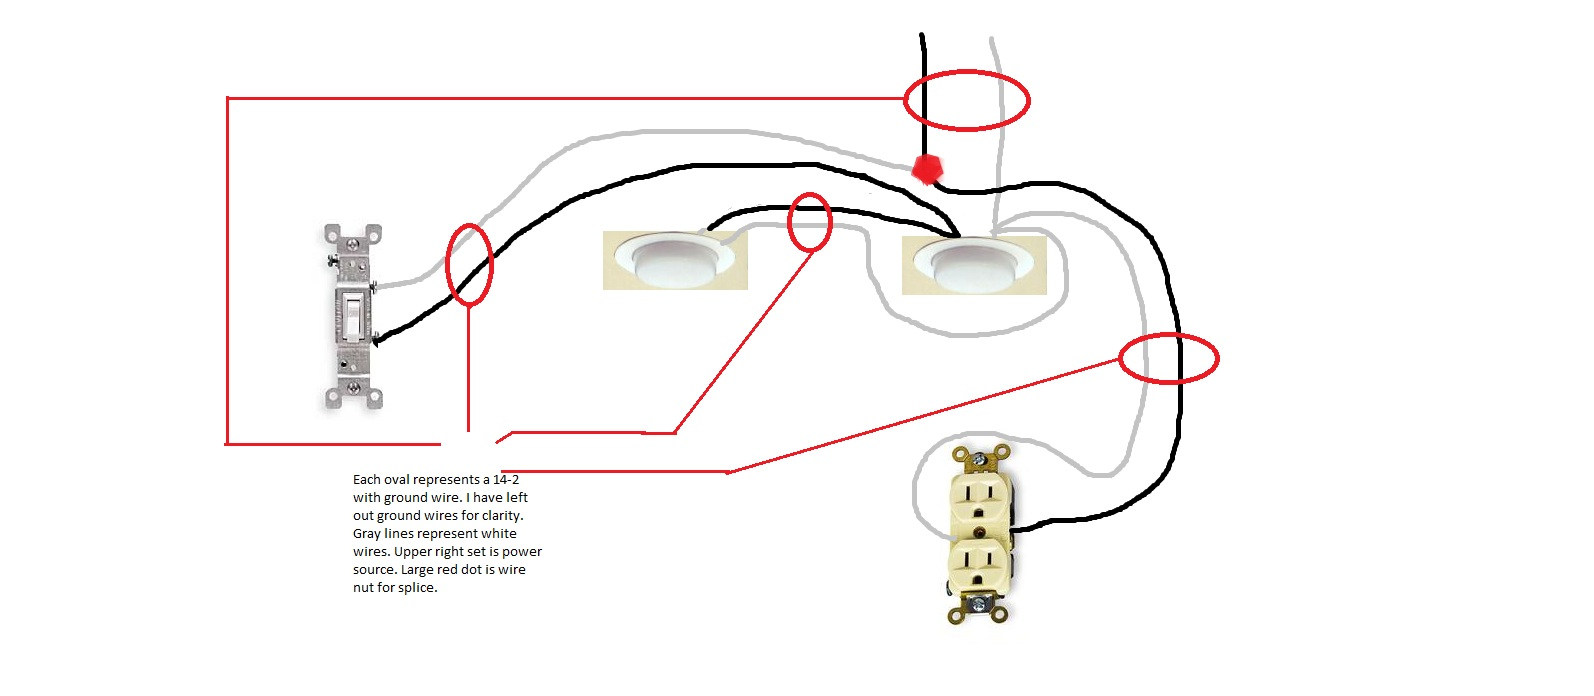 house wiring outlet the wiring diagram house wiring outlet vidim wiring diagram house wiring